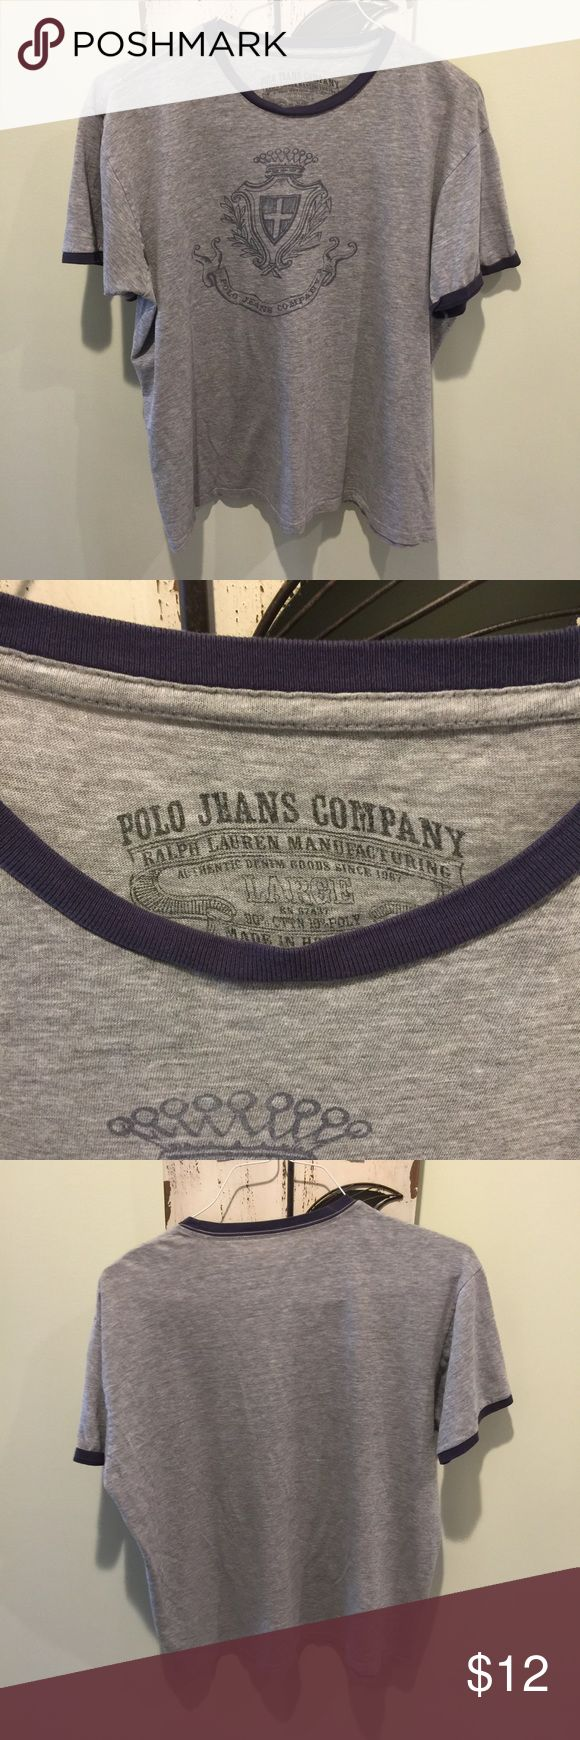 Men's Polo Jeans Company Gray T-Shirt Ralph Lauren Men's Polo Jeans Company Ralph Lauren Gray T-Shirt Size Large with a blue graphic on the front. Polo Jeans Company Shirts Tees - Short Sleeve